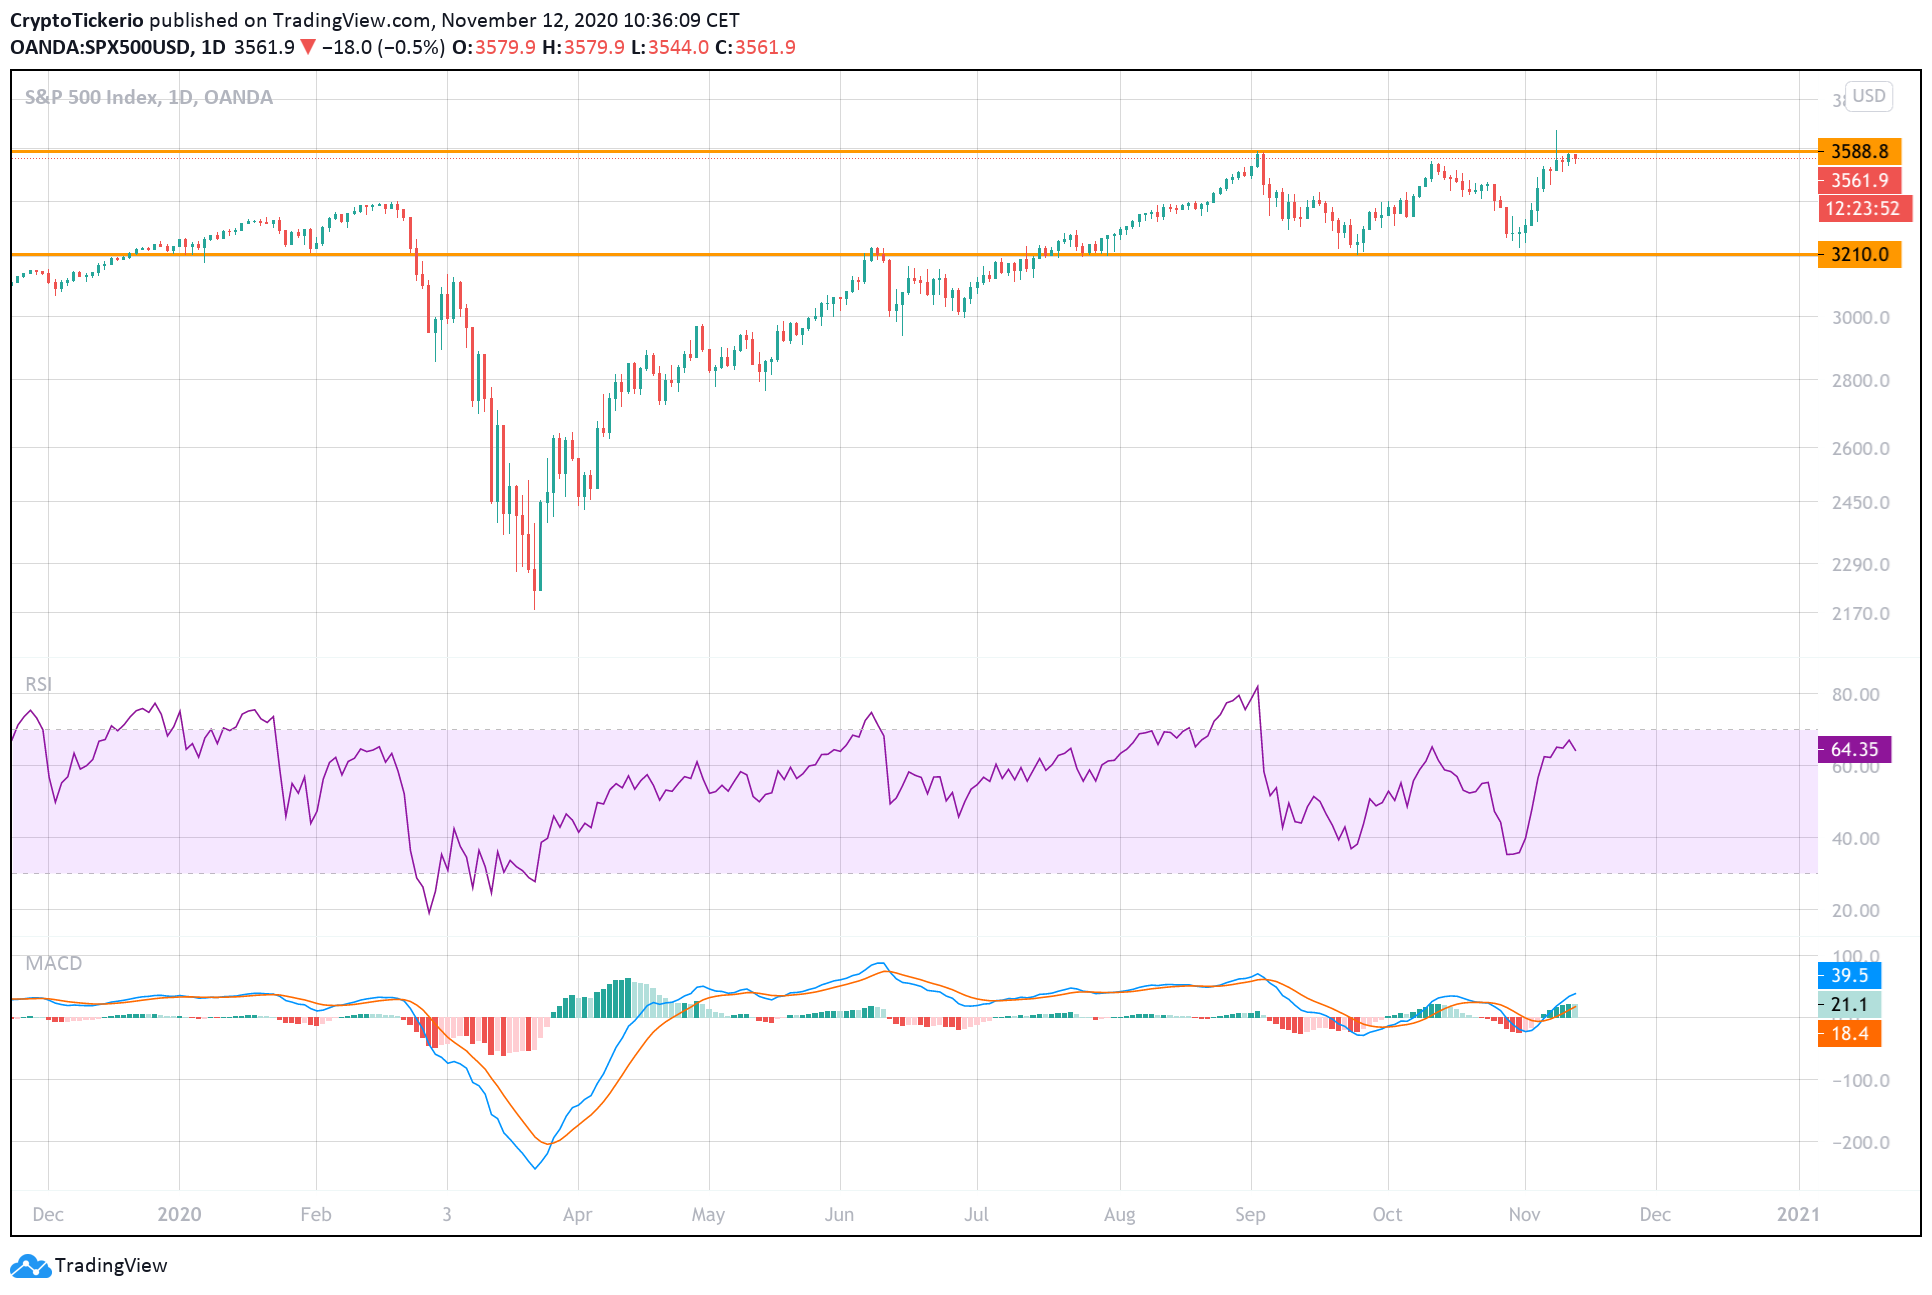 SPX500 1 day prices in 2020